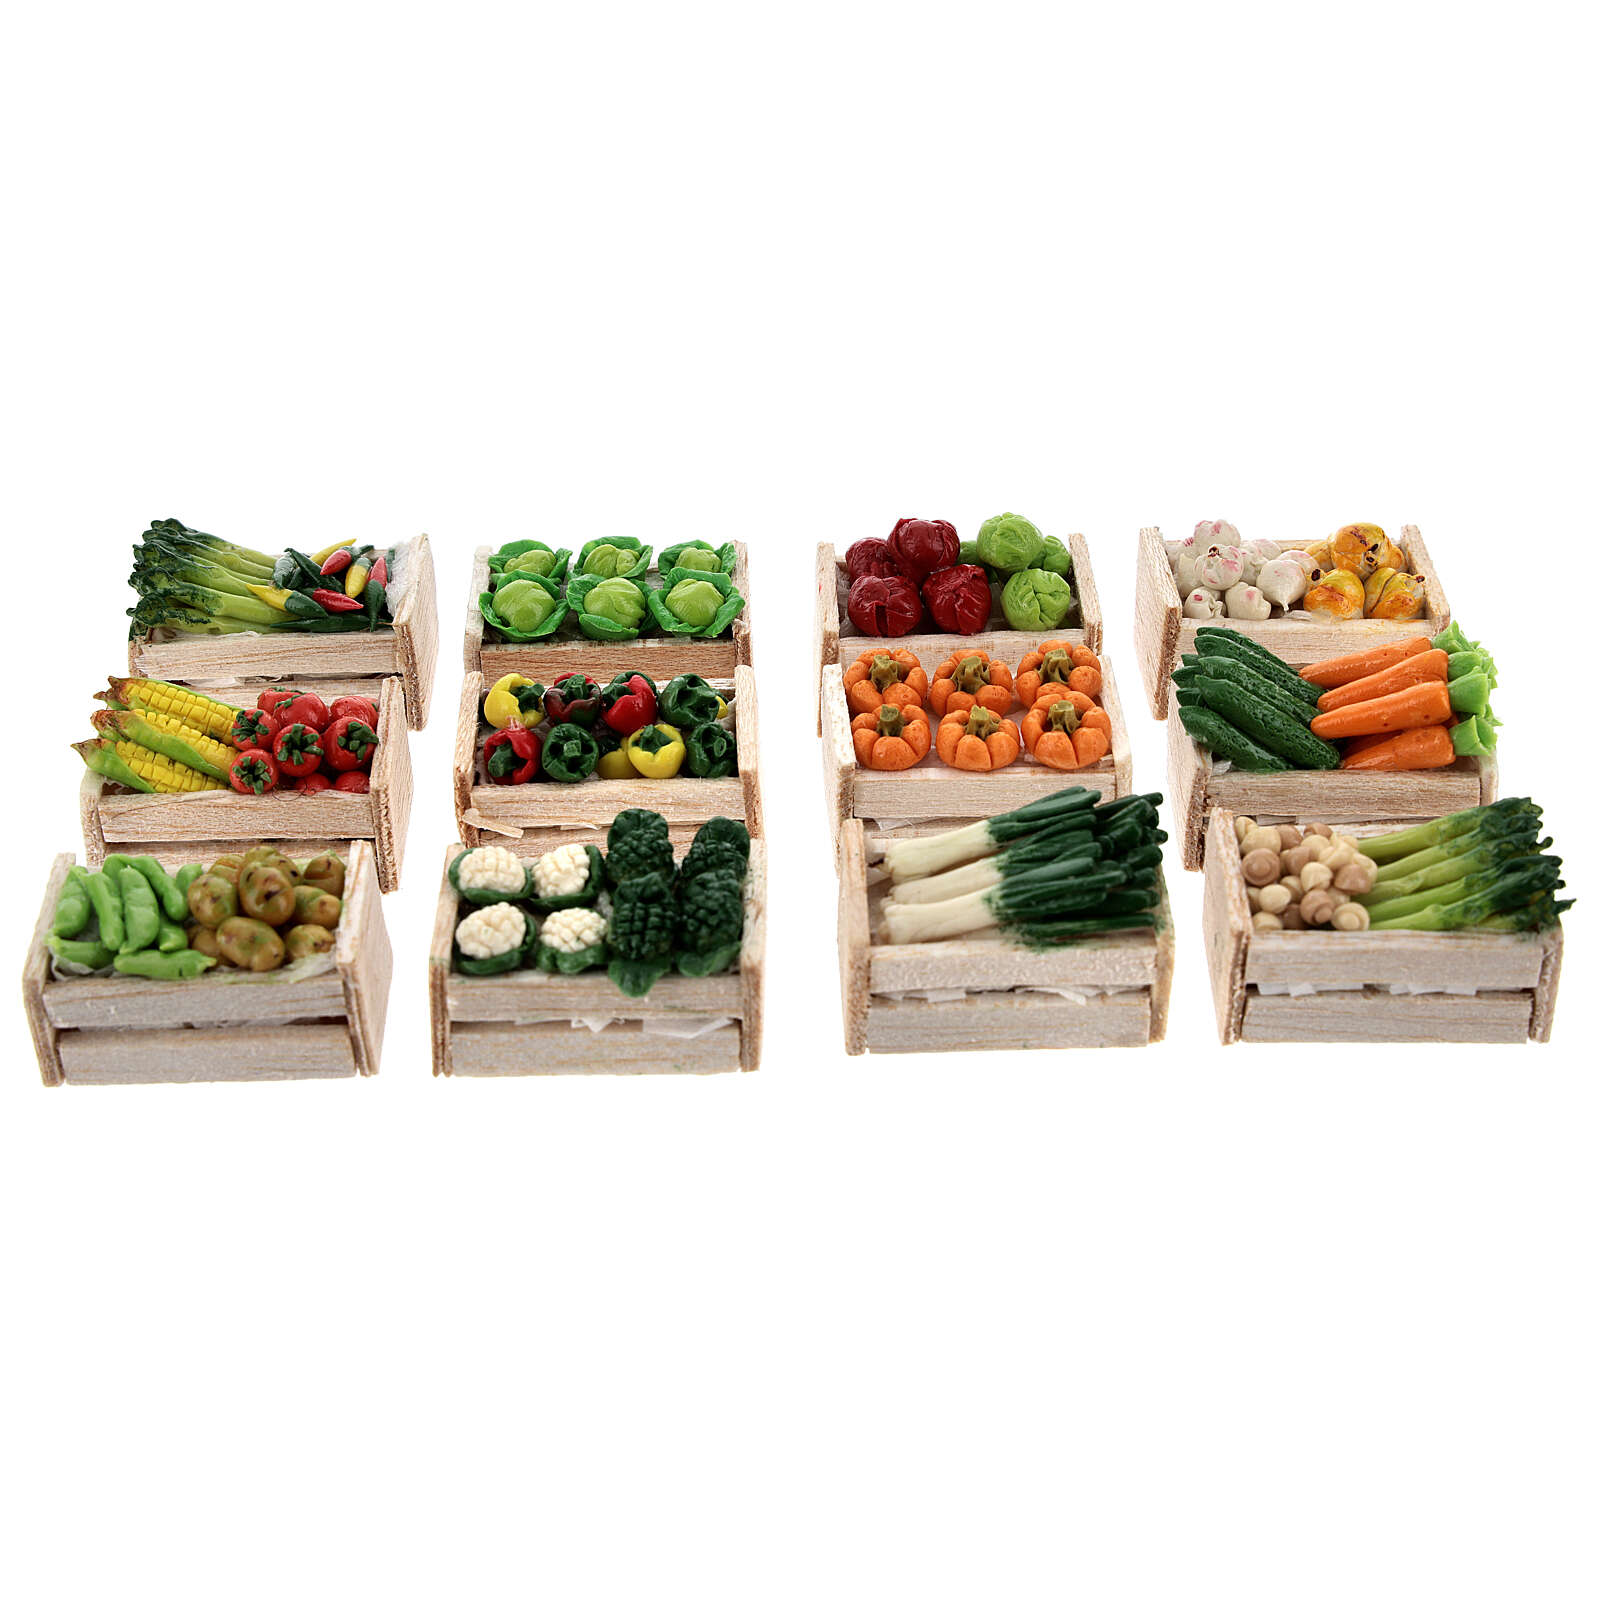 Boxes with vegetables 12 pieces 2x2,5x2 for Nativity Scene with 8 cm figurines 4